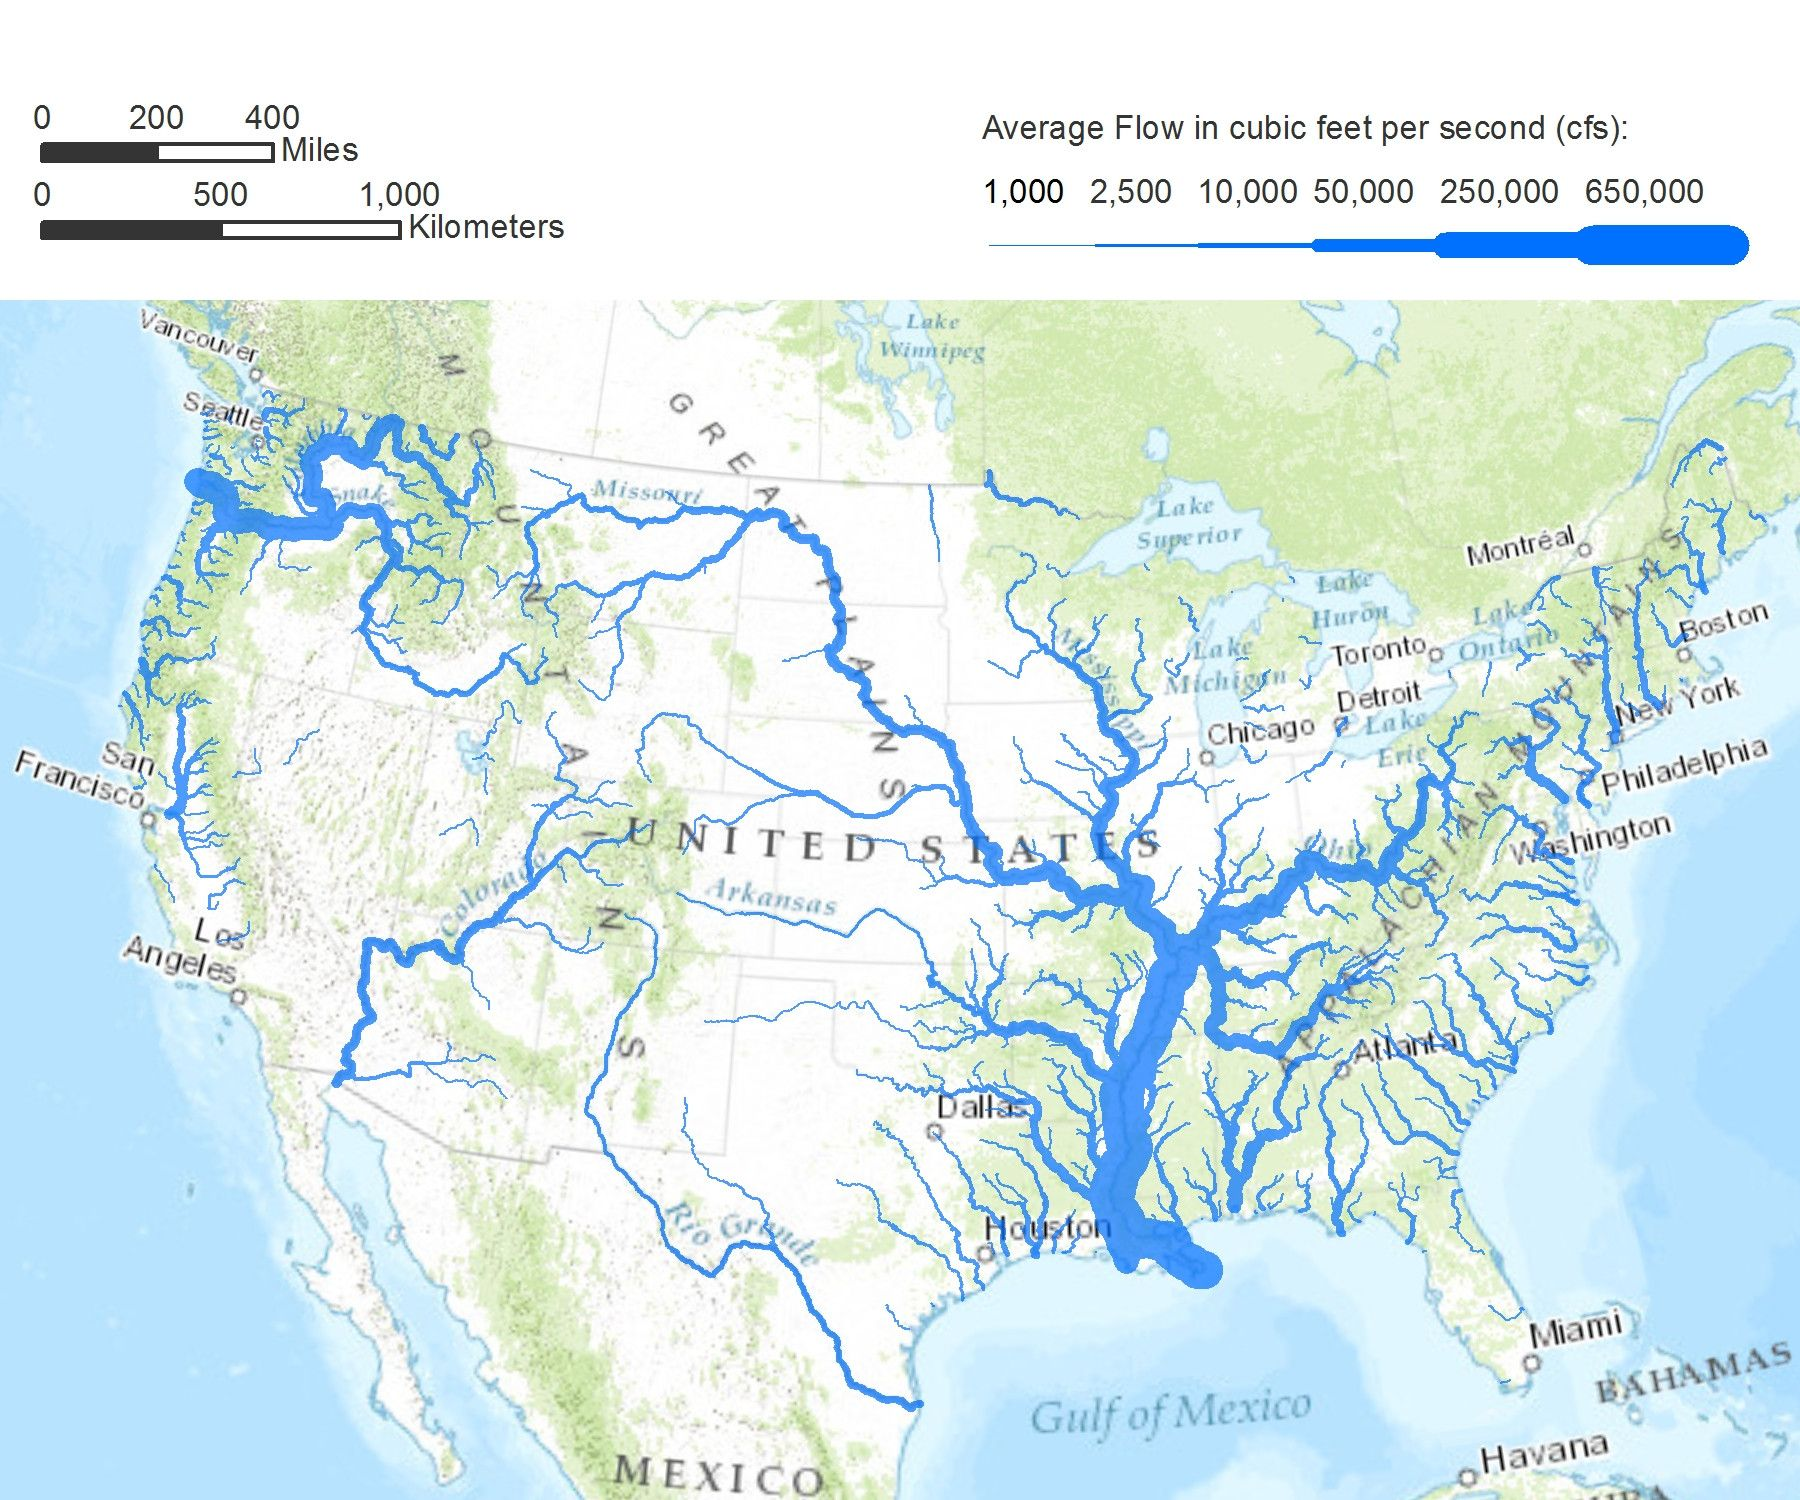 Rivers in the continental United States drawn with linewidth ...